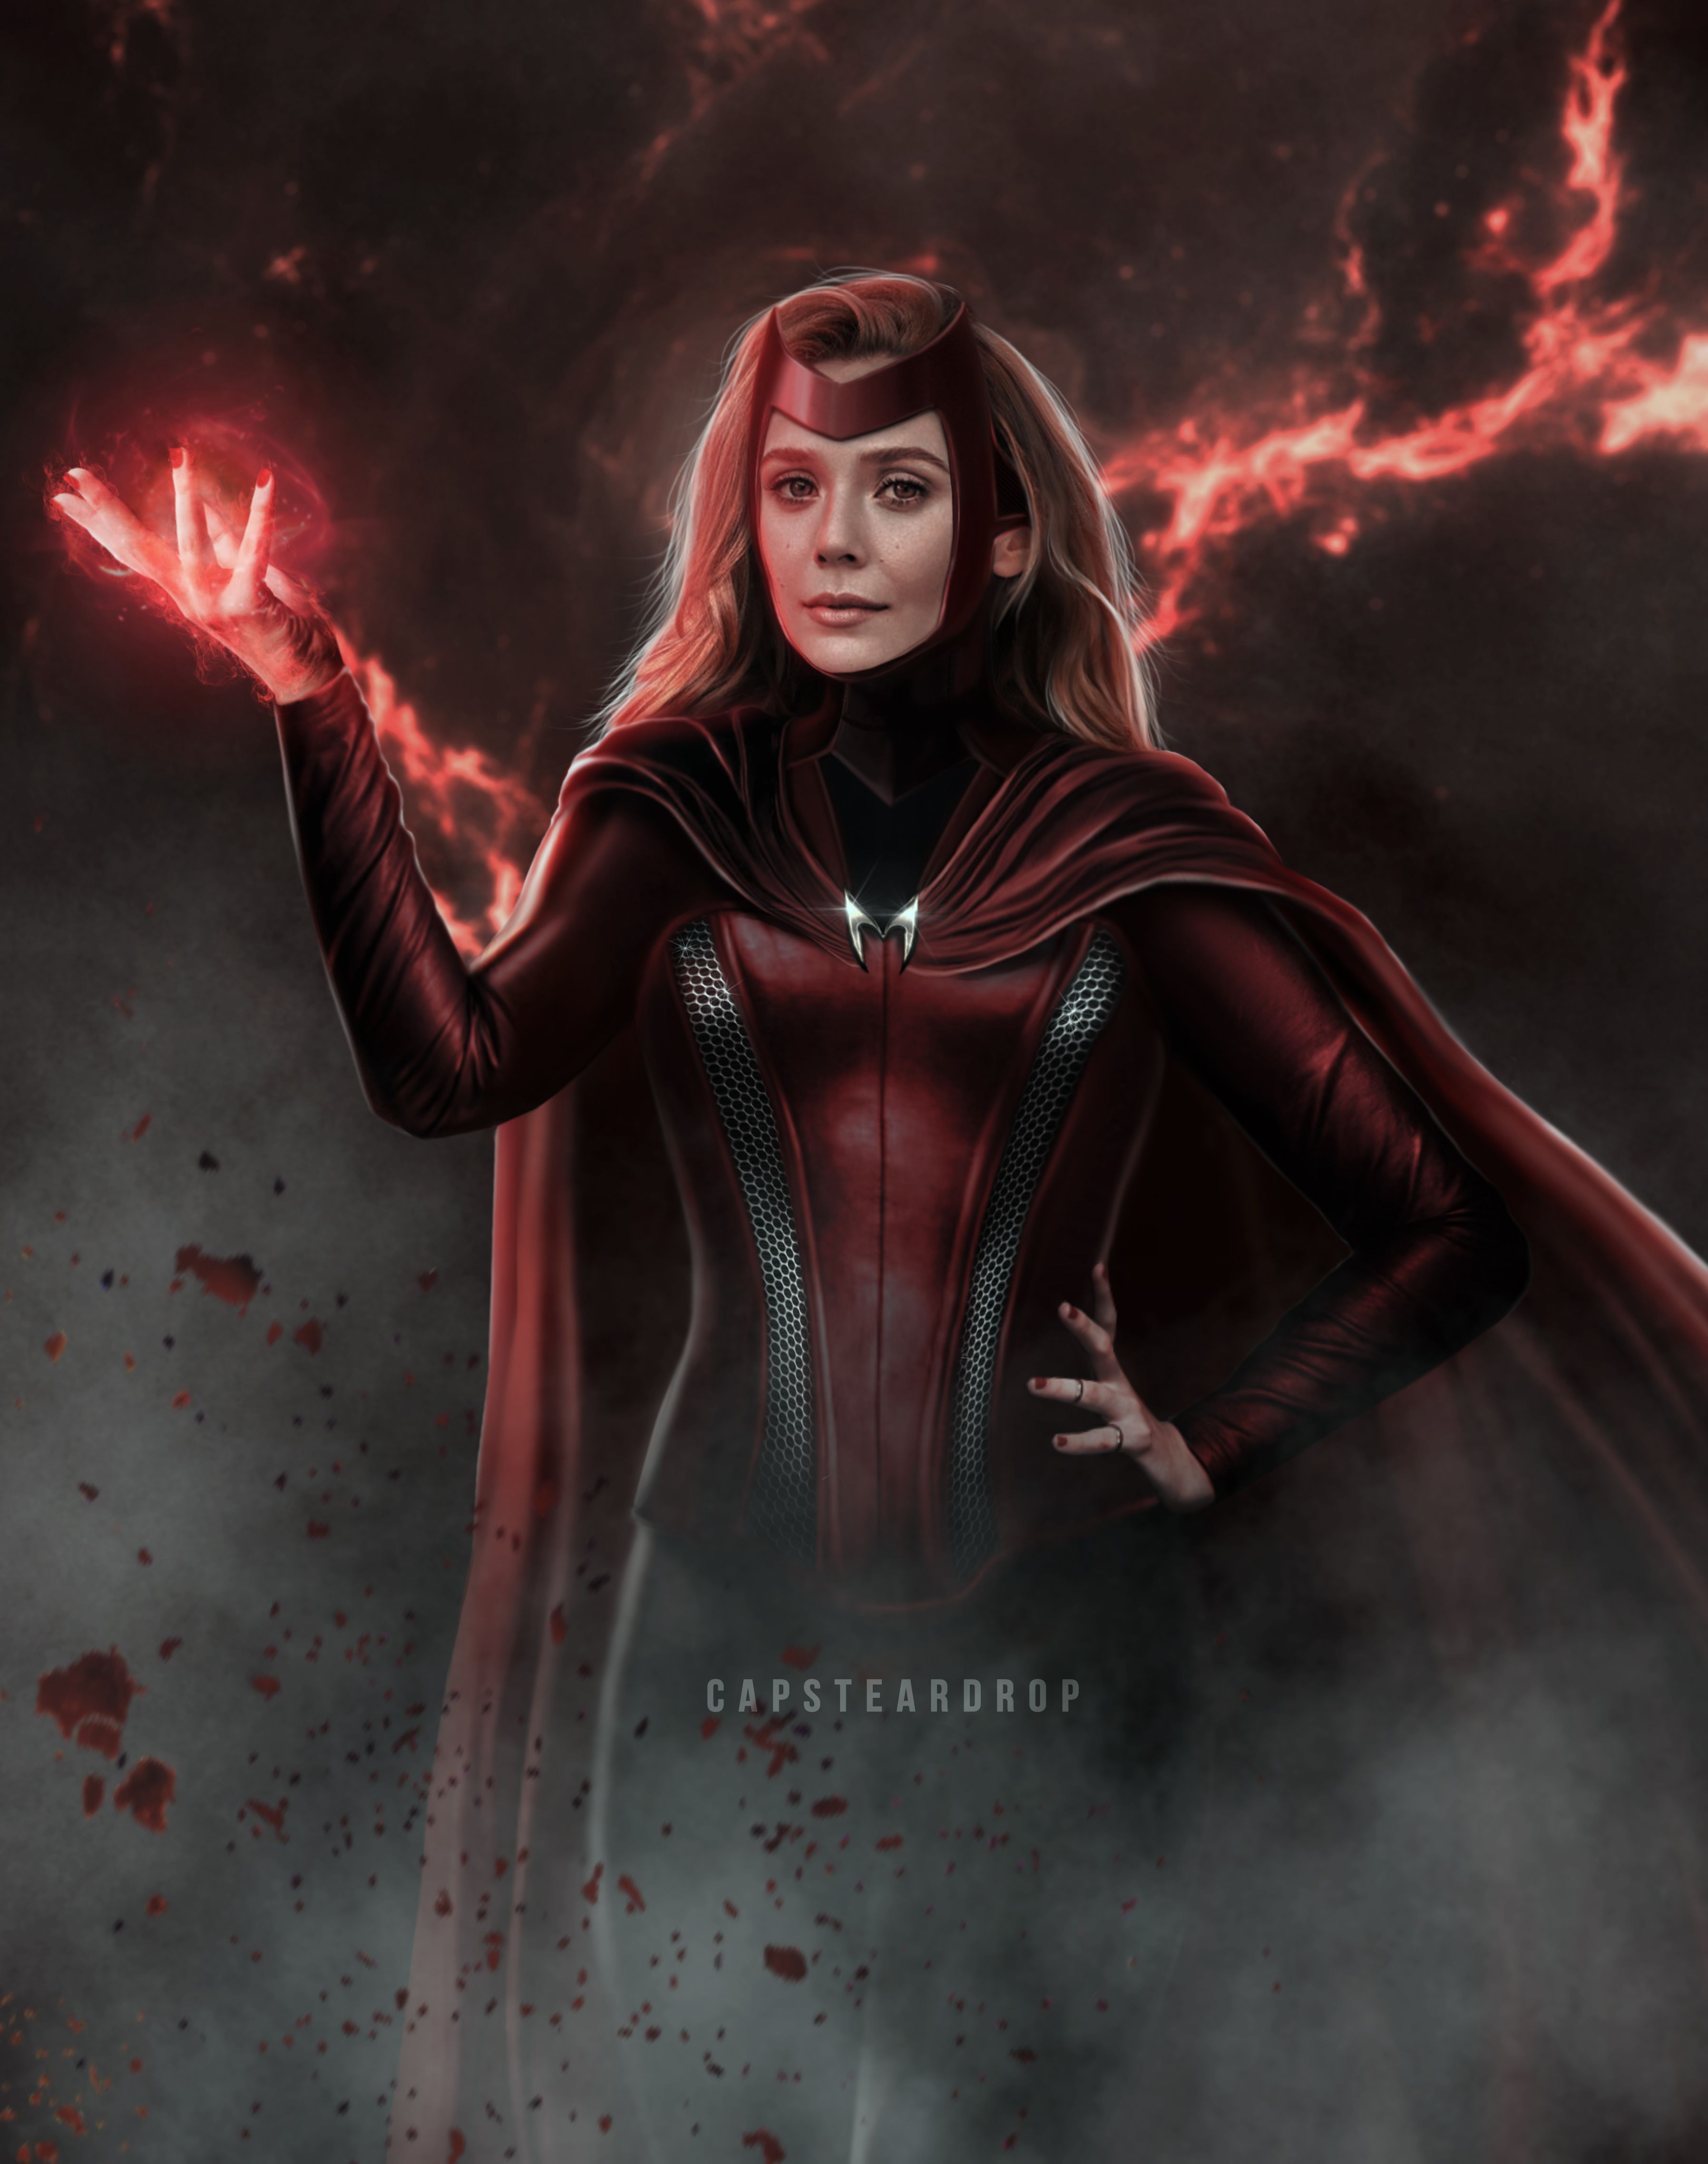 Scarlet Witch Concept Art In 2020 Scarlet Witch Comic Scarlet Witch Scarlet Witch Marvel